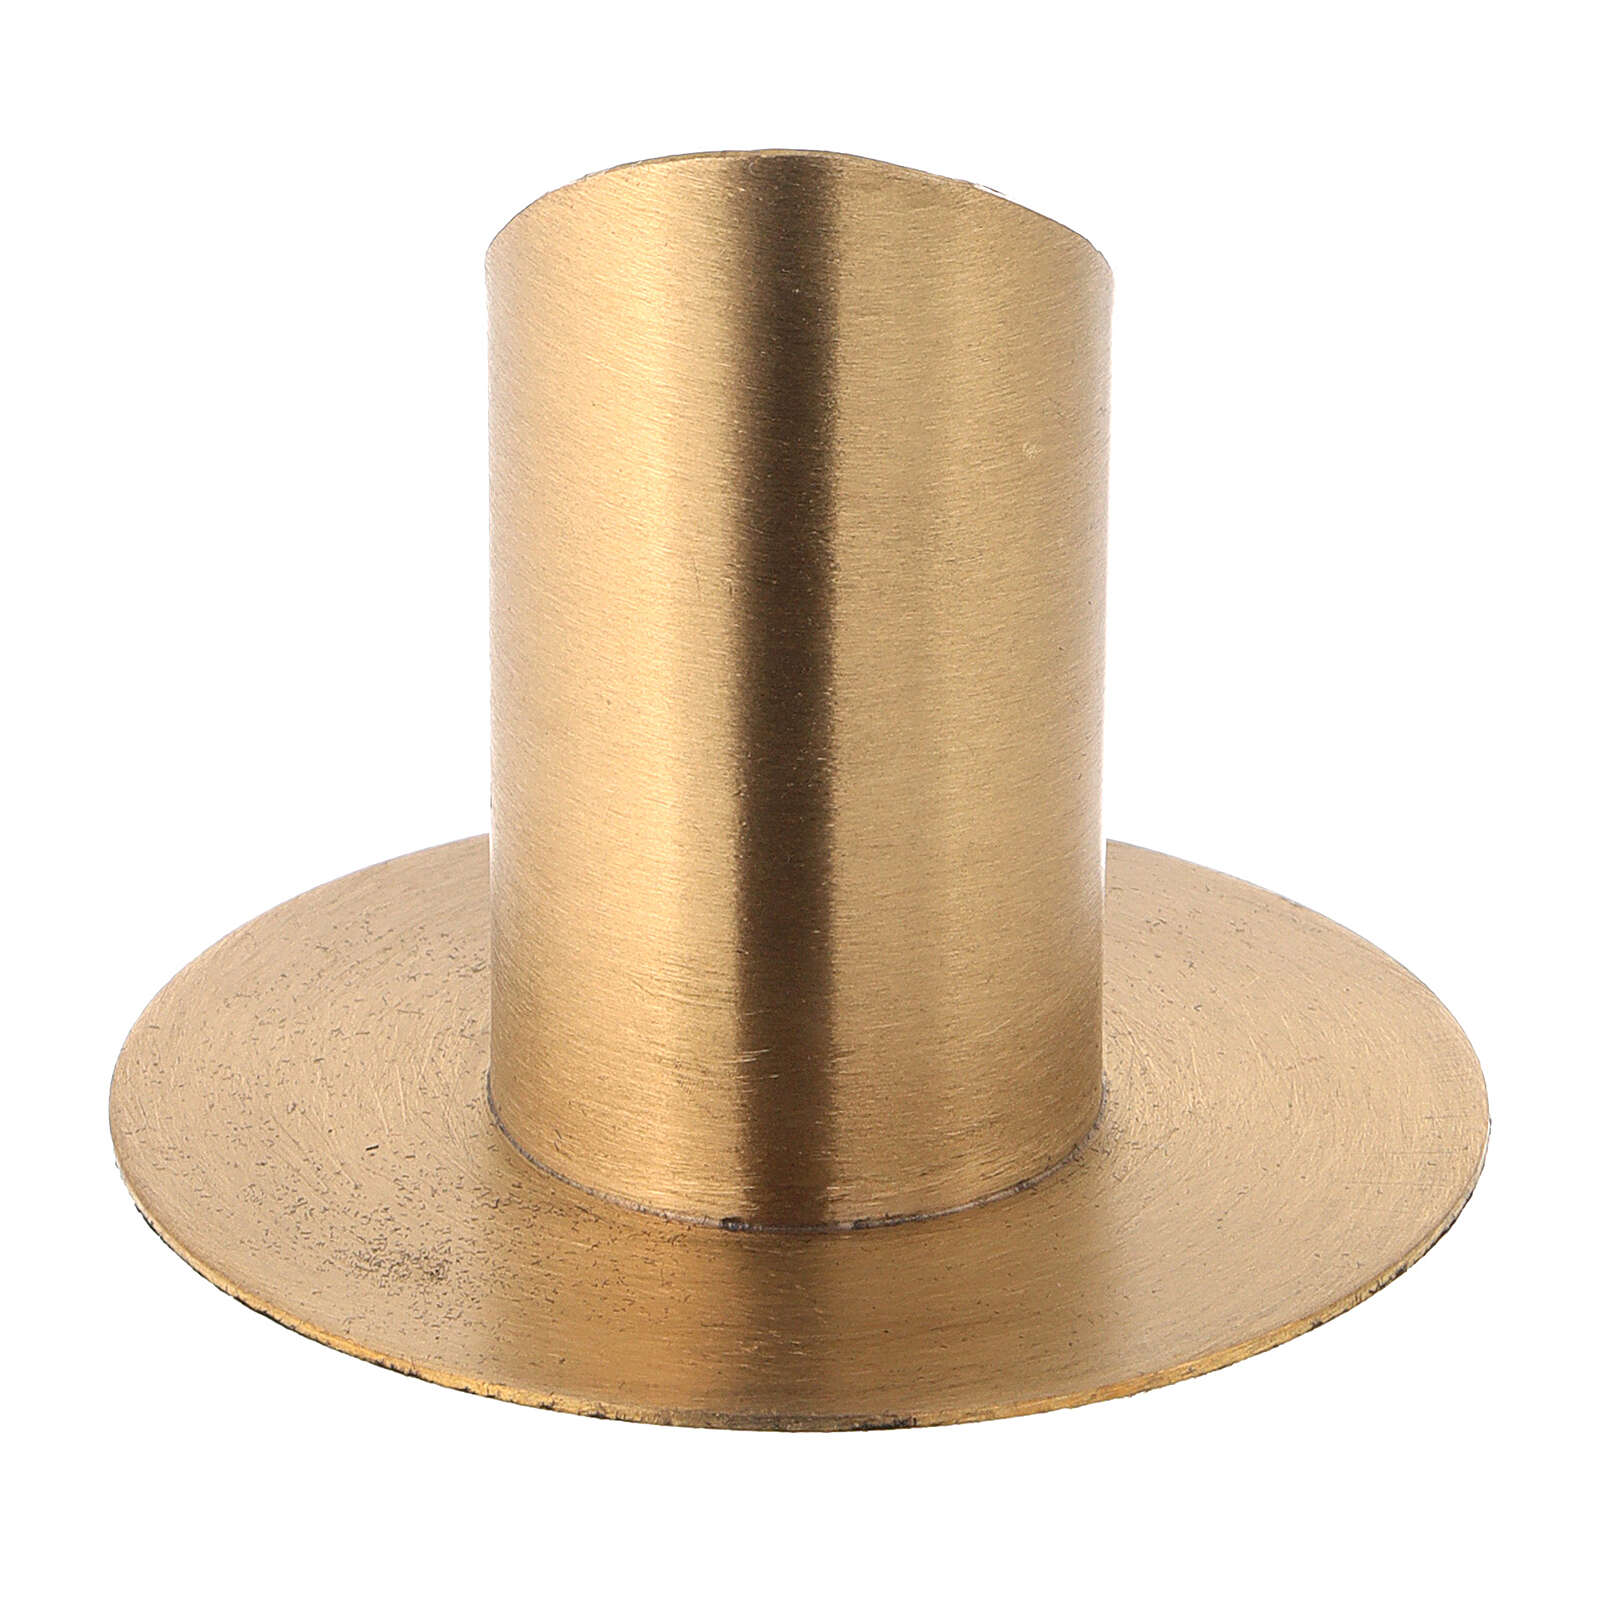 Nickel-plated brass candlestick with satin finish diameter 1 1/2 in 4